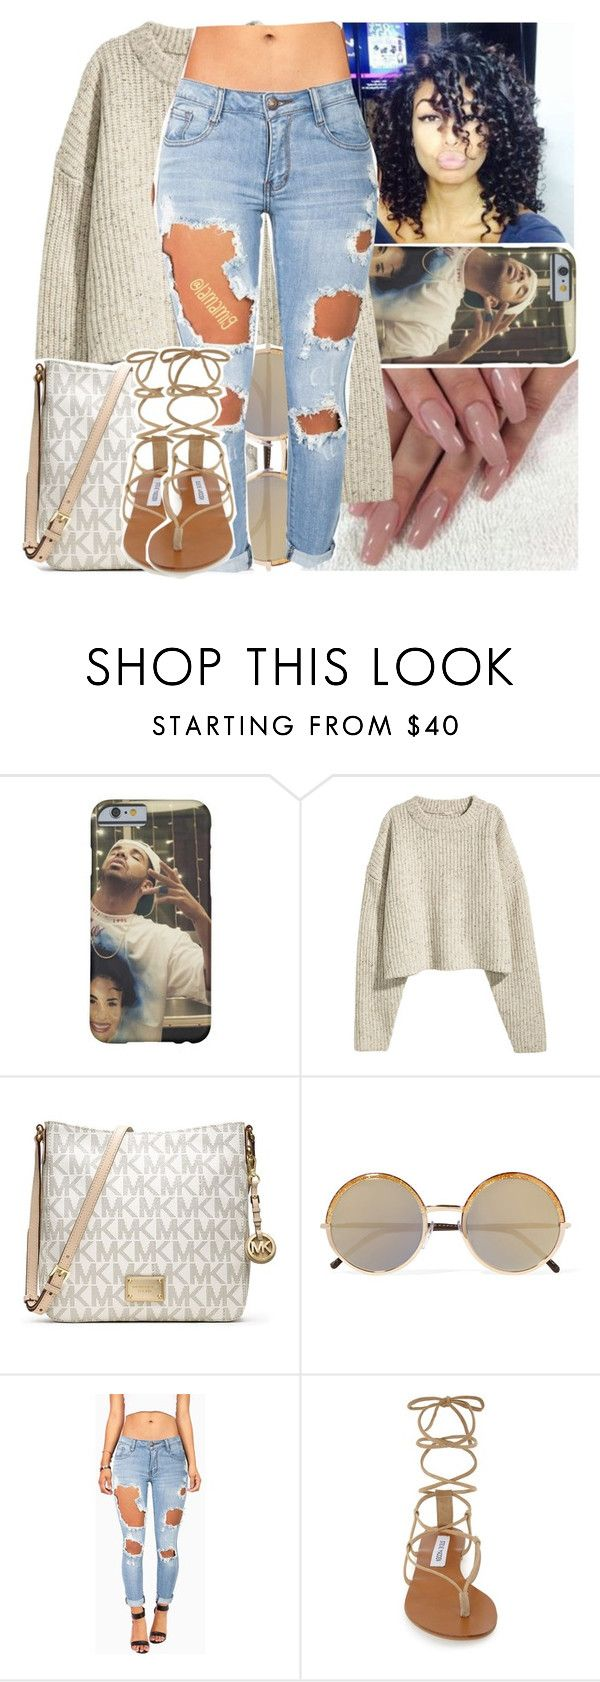 """""""girl, you got values like my momma. meet me at the altar"""" by lamamig ❤ liked on Polyvore featuring MICHAEL Michael Kors, Cutler and Gross, Machine and Steve Madden"""